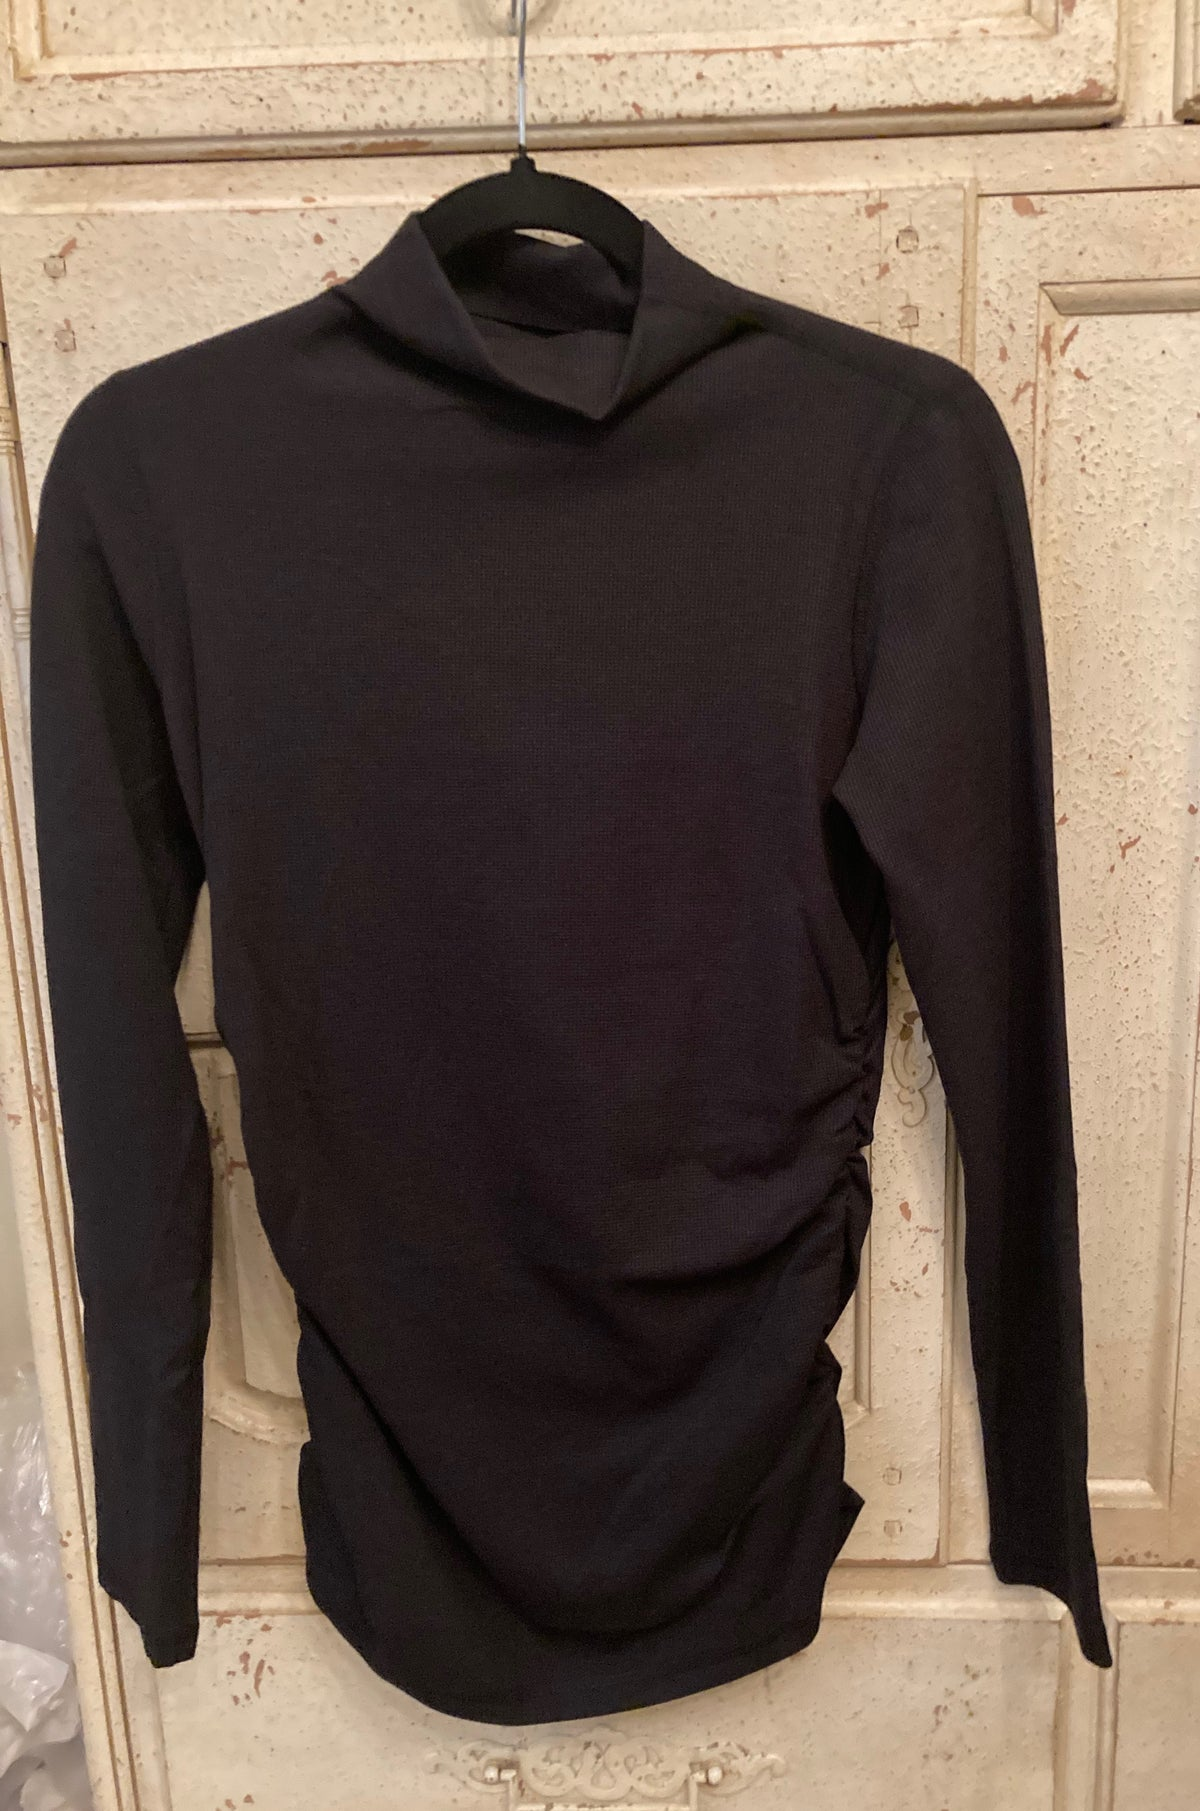 BERMUDA THERMAL MOCK TURTLENECK IN BLACK